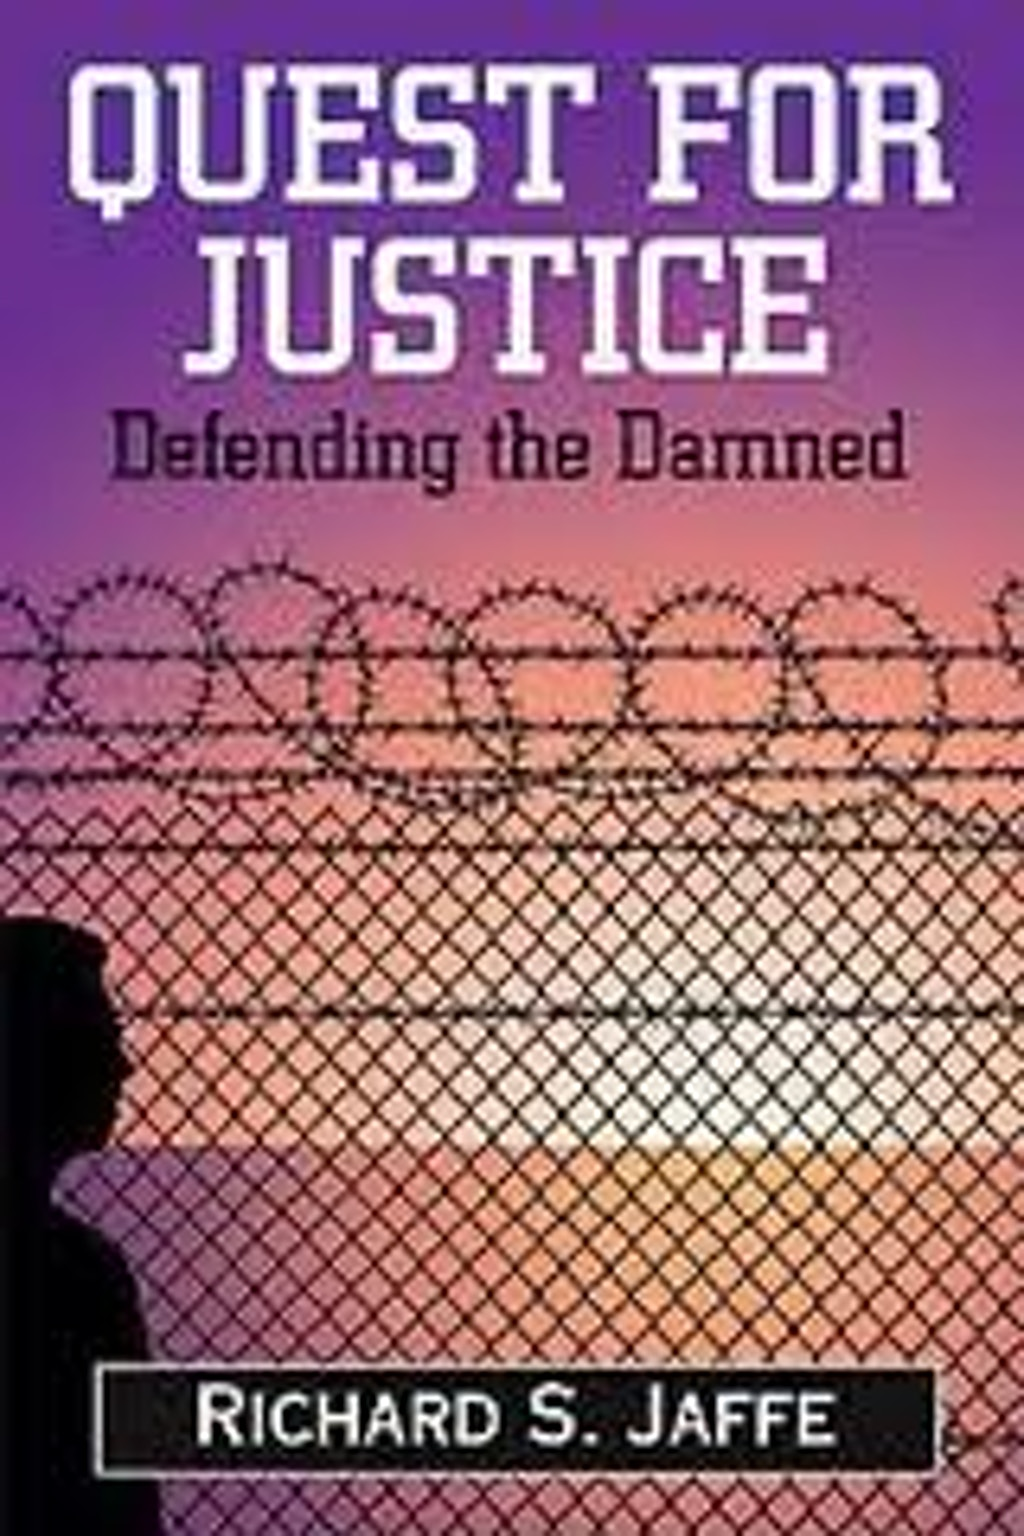 BOOKS: Quest for Justice - Defending the Damned